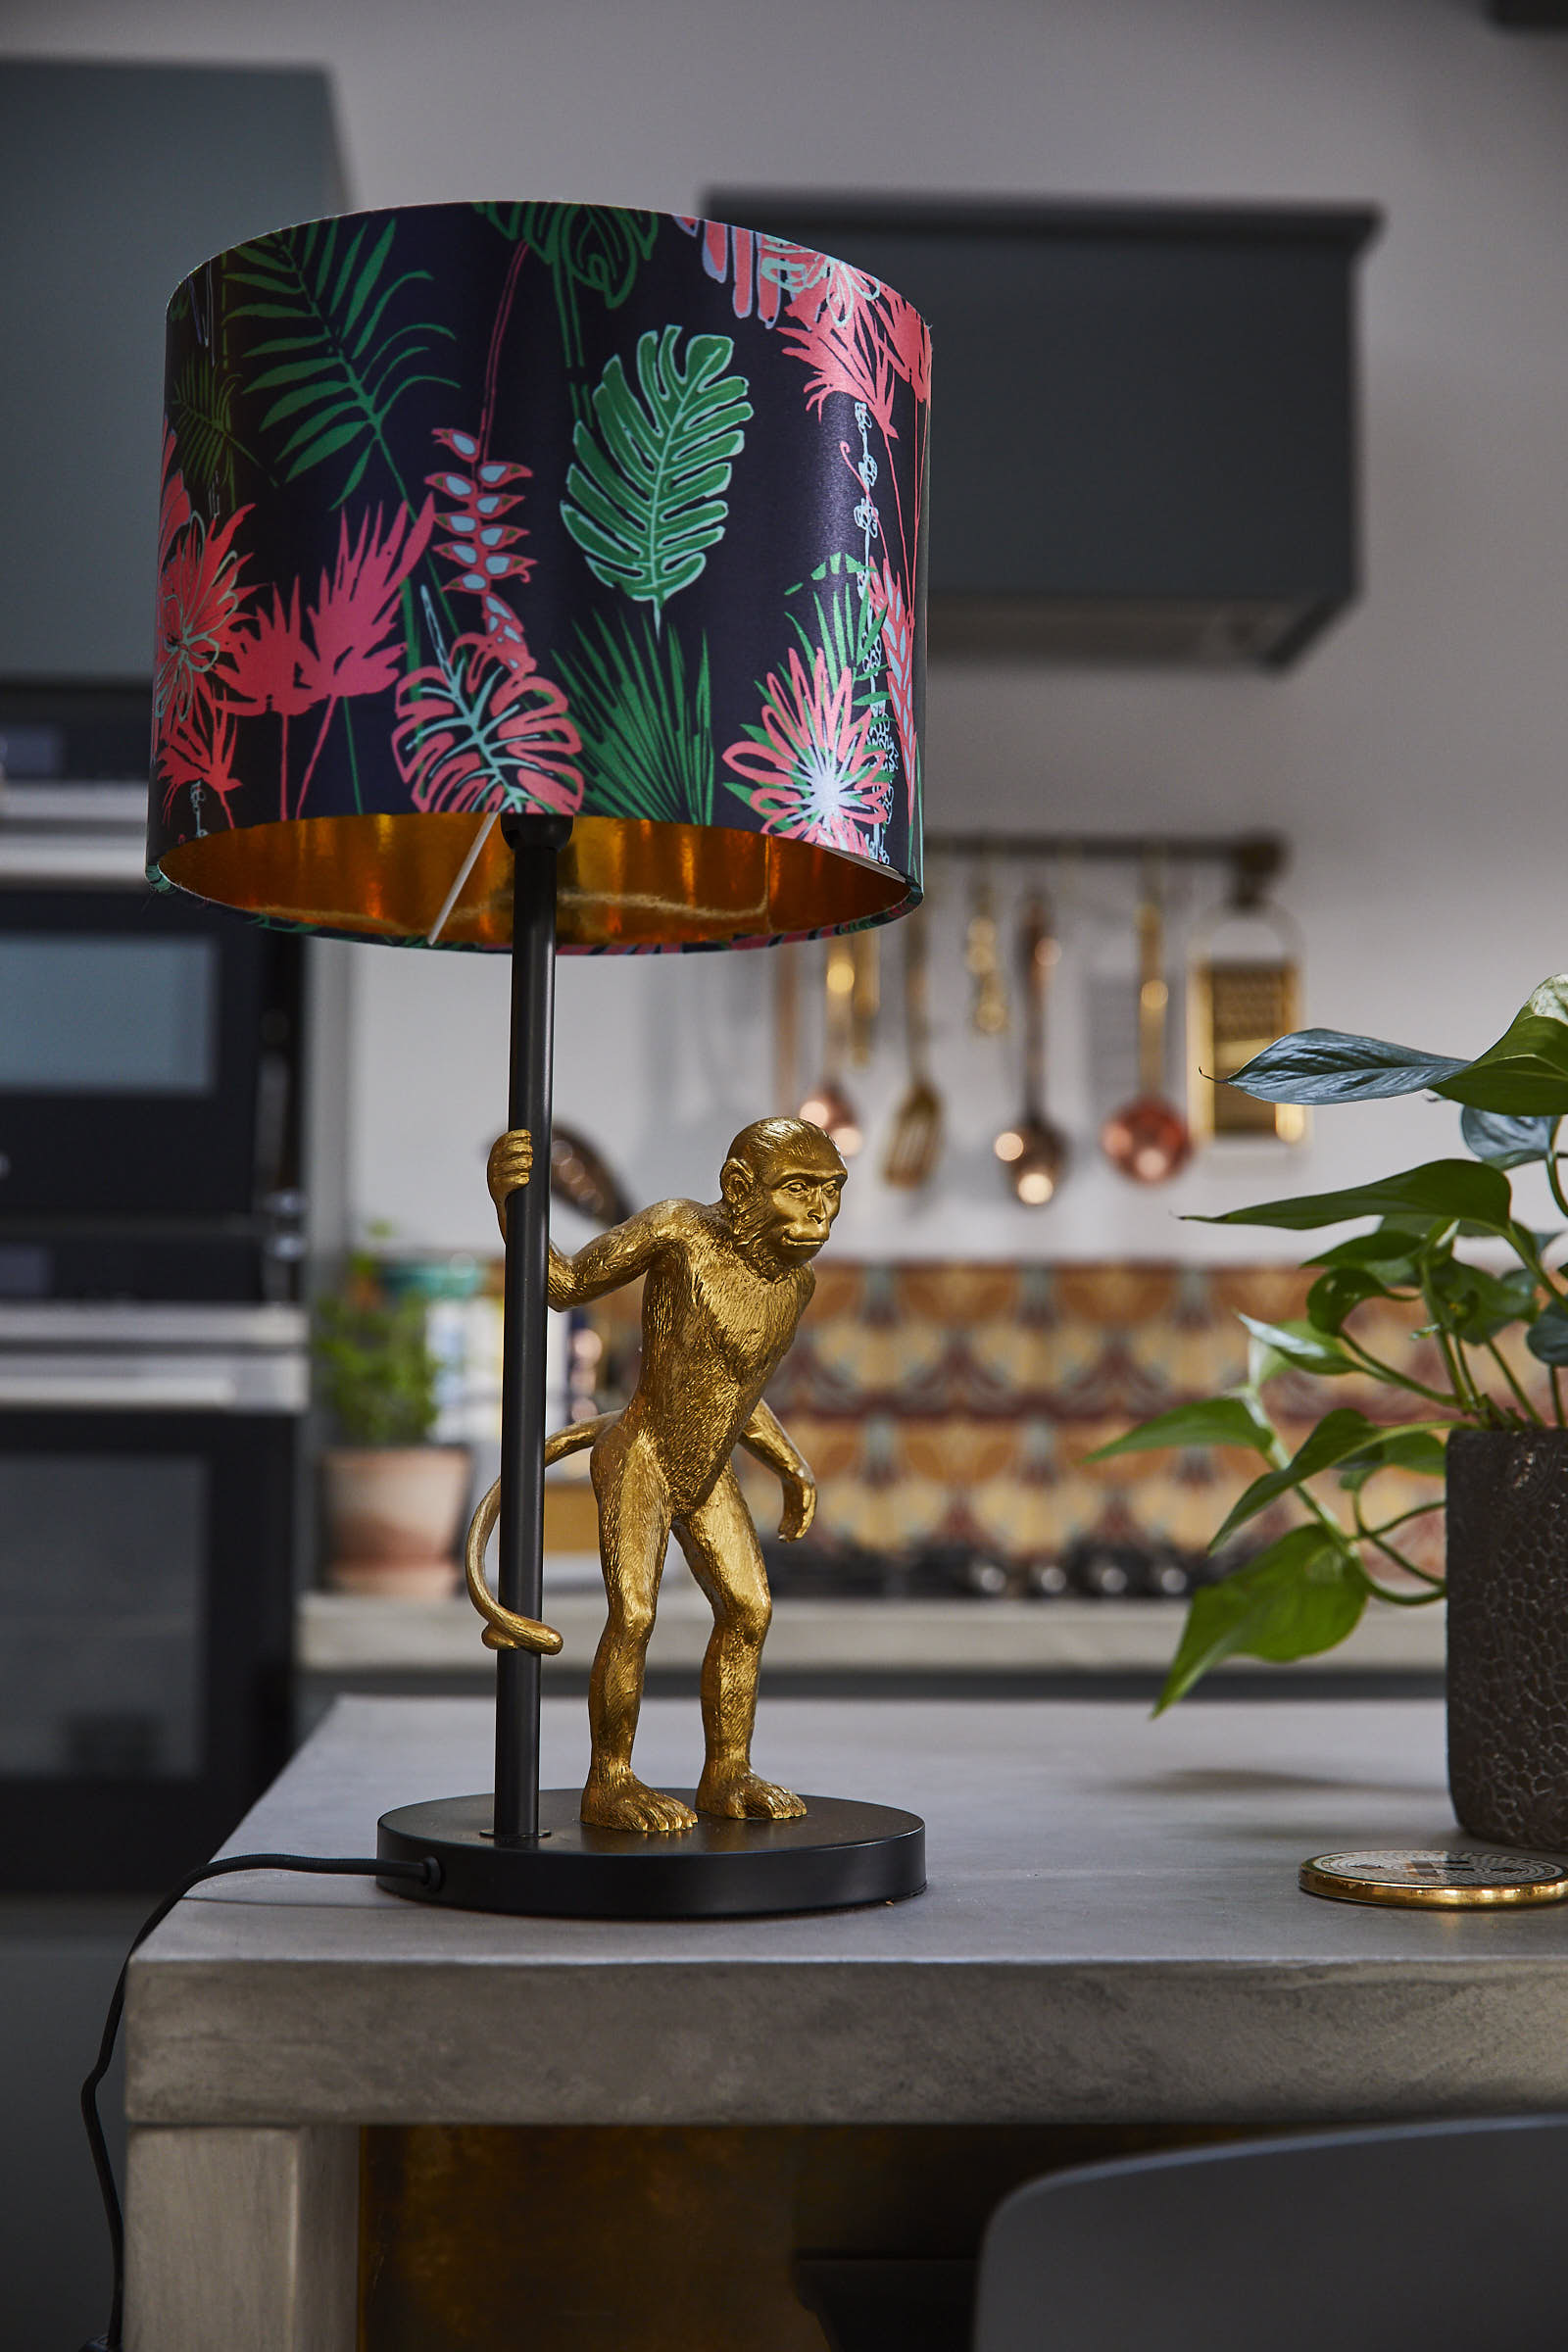 Gold monkey lamp holding colourful pink shade